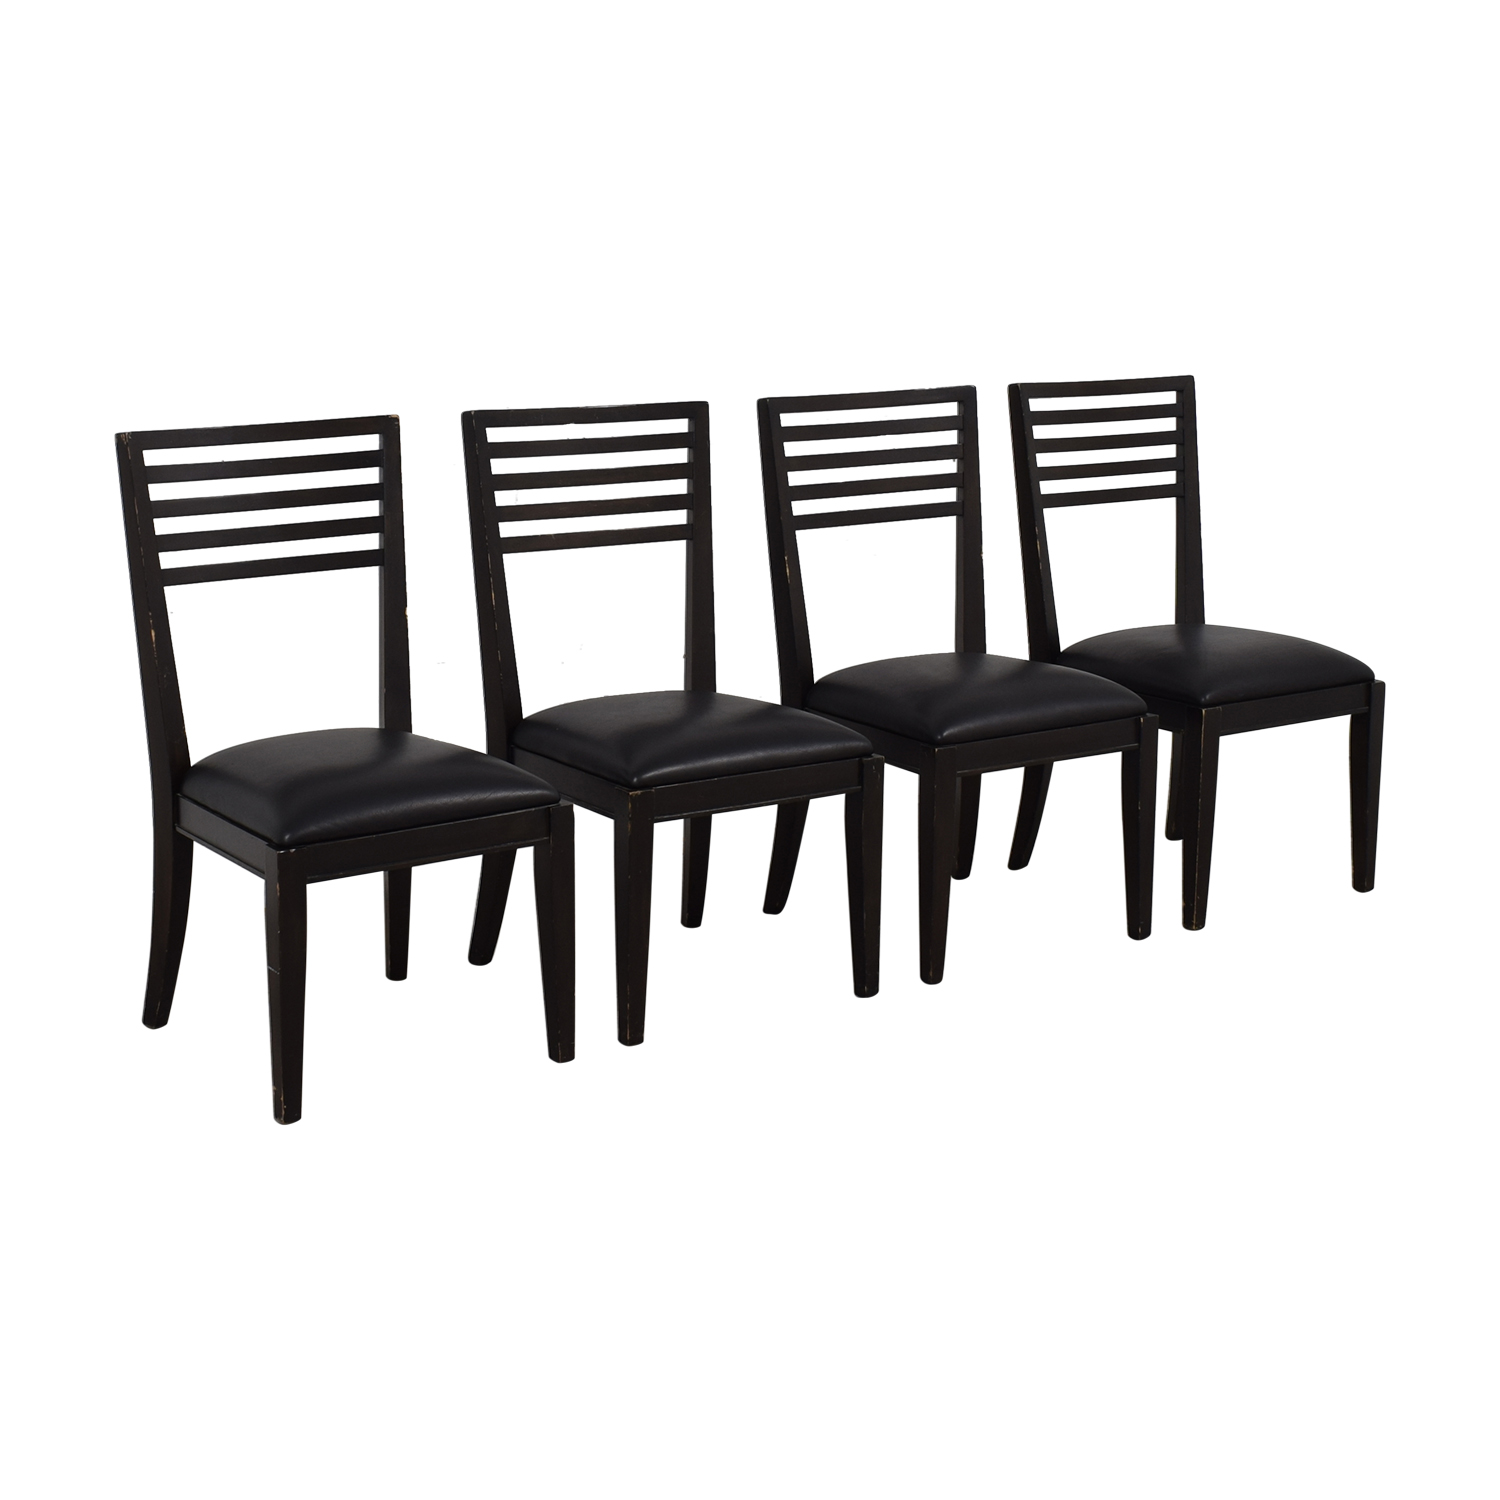 Crate & Barrel Black Dining Chairs sale